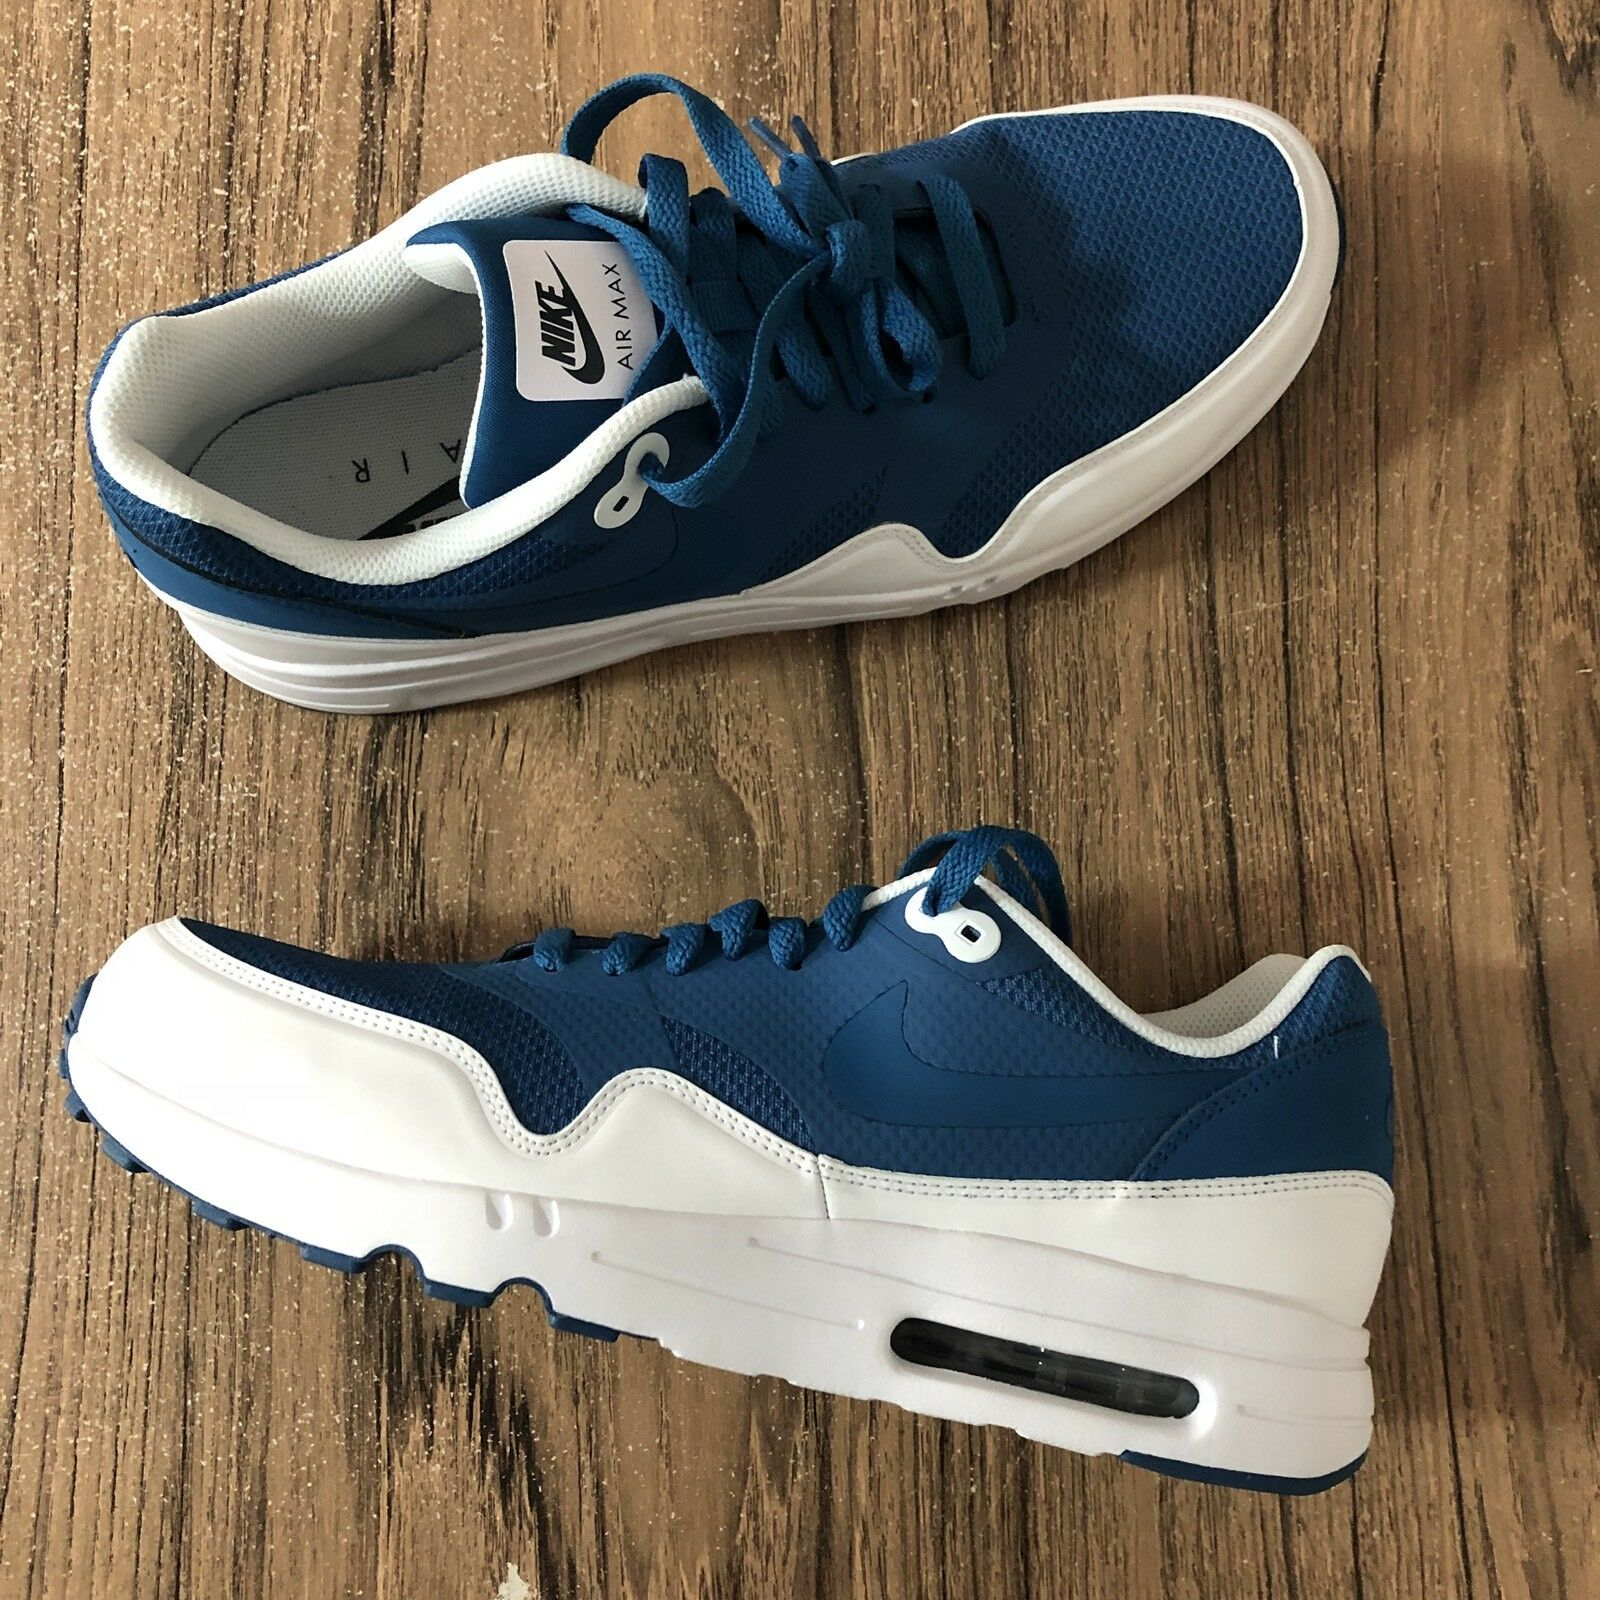 A651G Nike Air Max 1 Ultra 2.0 875679-402 Blue White Mens Sneakers Size 10 NEW